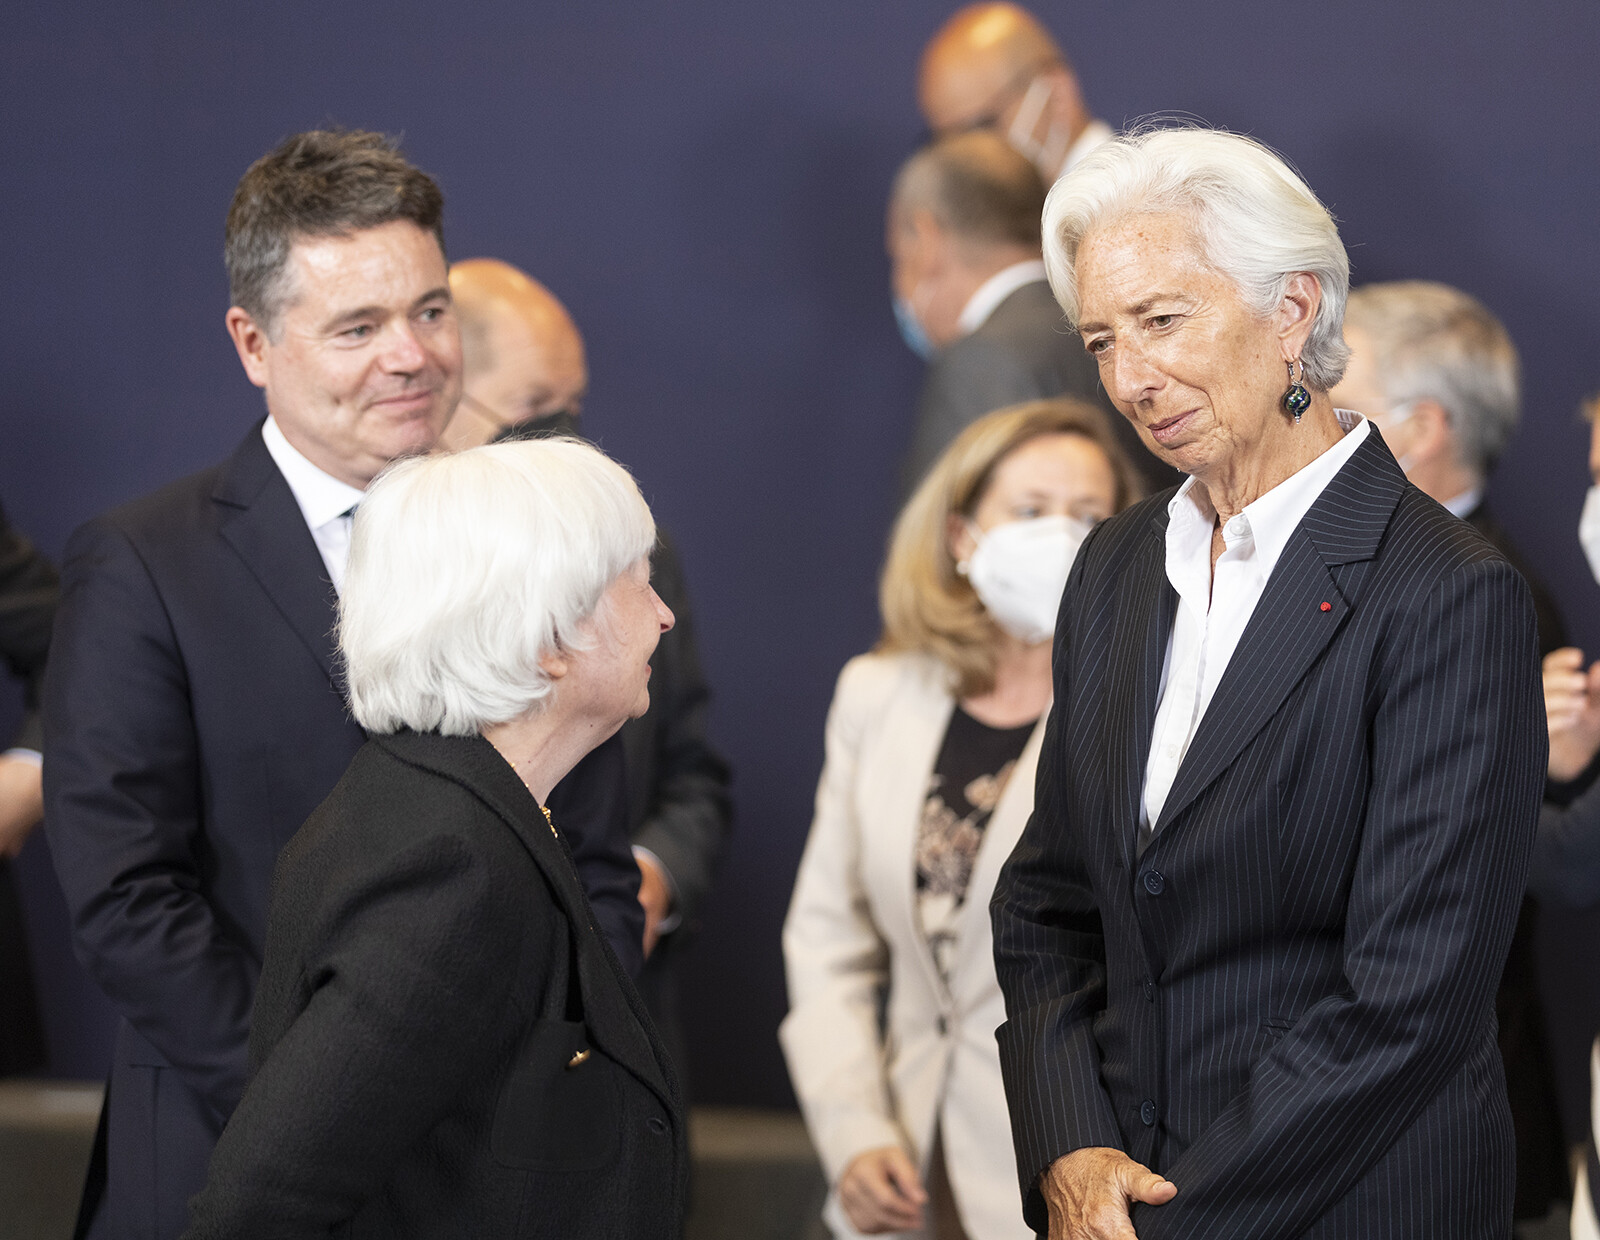 <i>Thierry Monasse/Getty Images</i><br/>President of the European Central Bank Christine Lagarde will host a press conference on July 22.